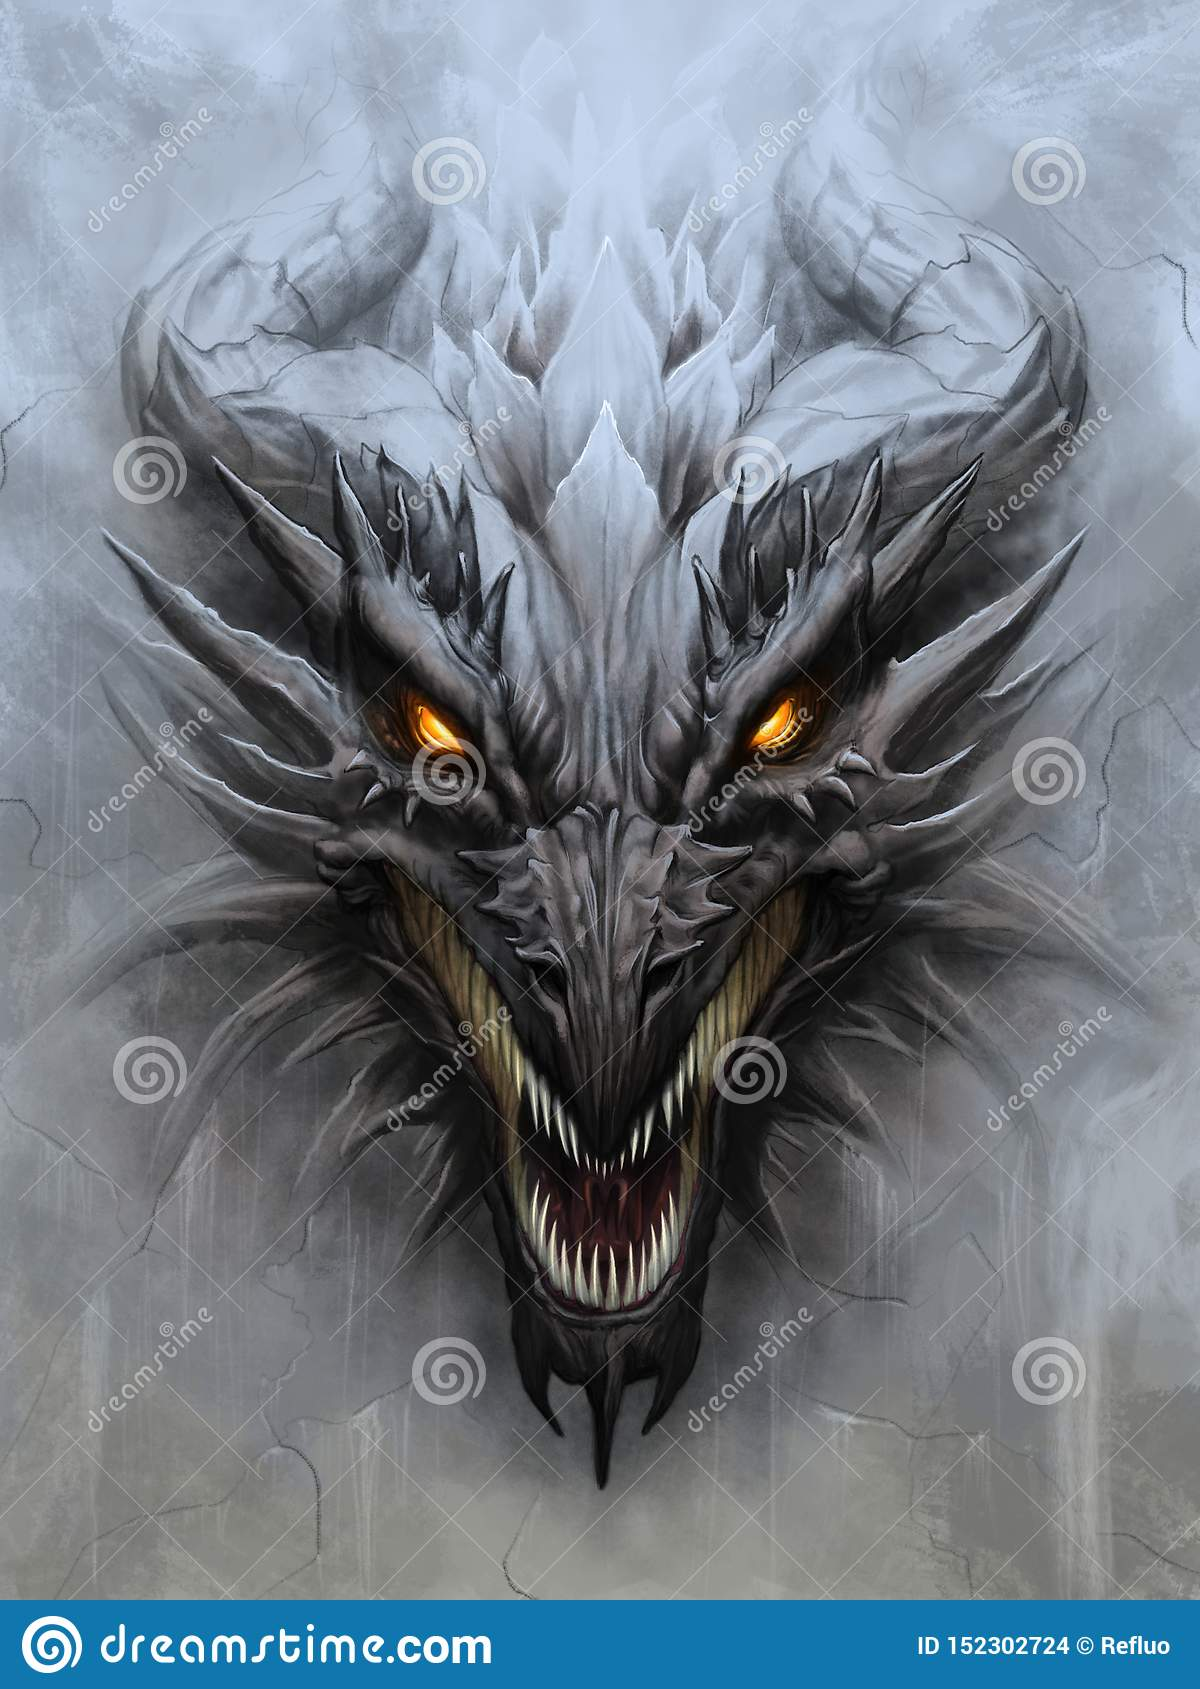 Front Dragon Head Drawing : front, dragon, drawing, Dragon, Picture, Stock, Illustrations, 94,005, Illustrations,, Vectors, Clipart, Dreamstime